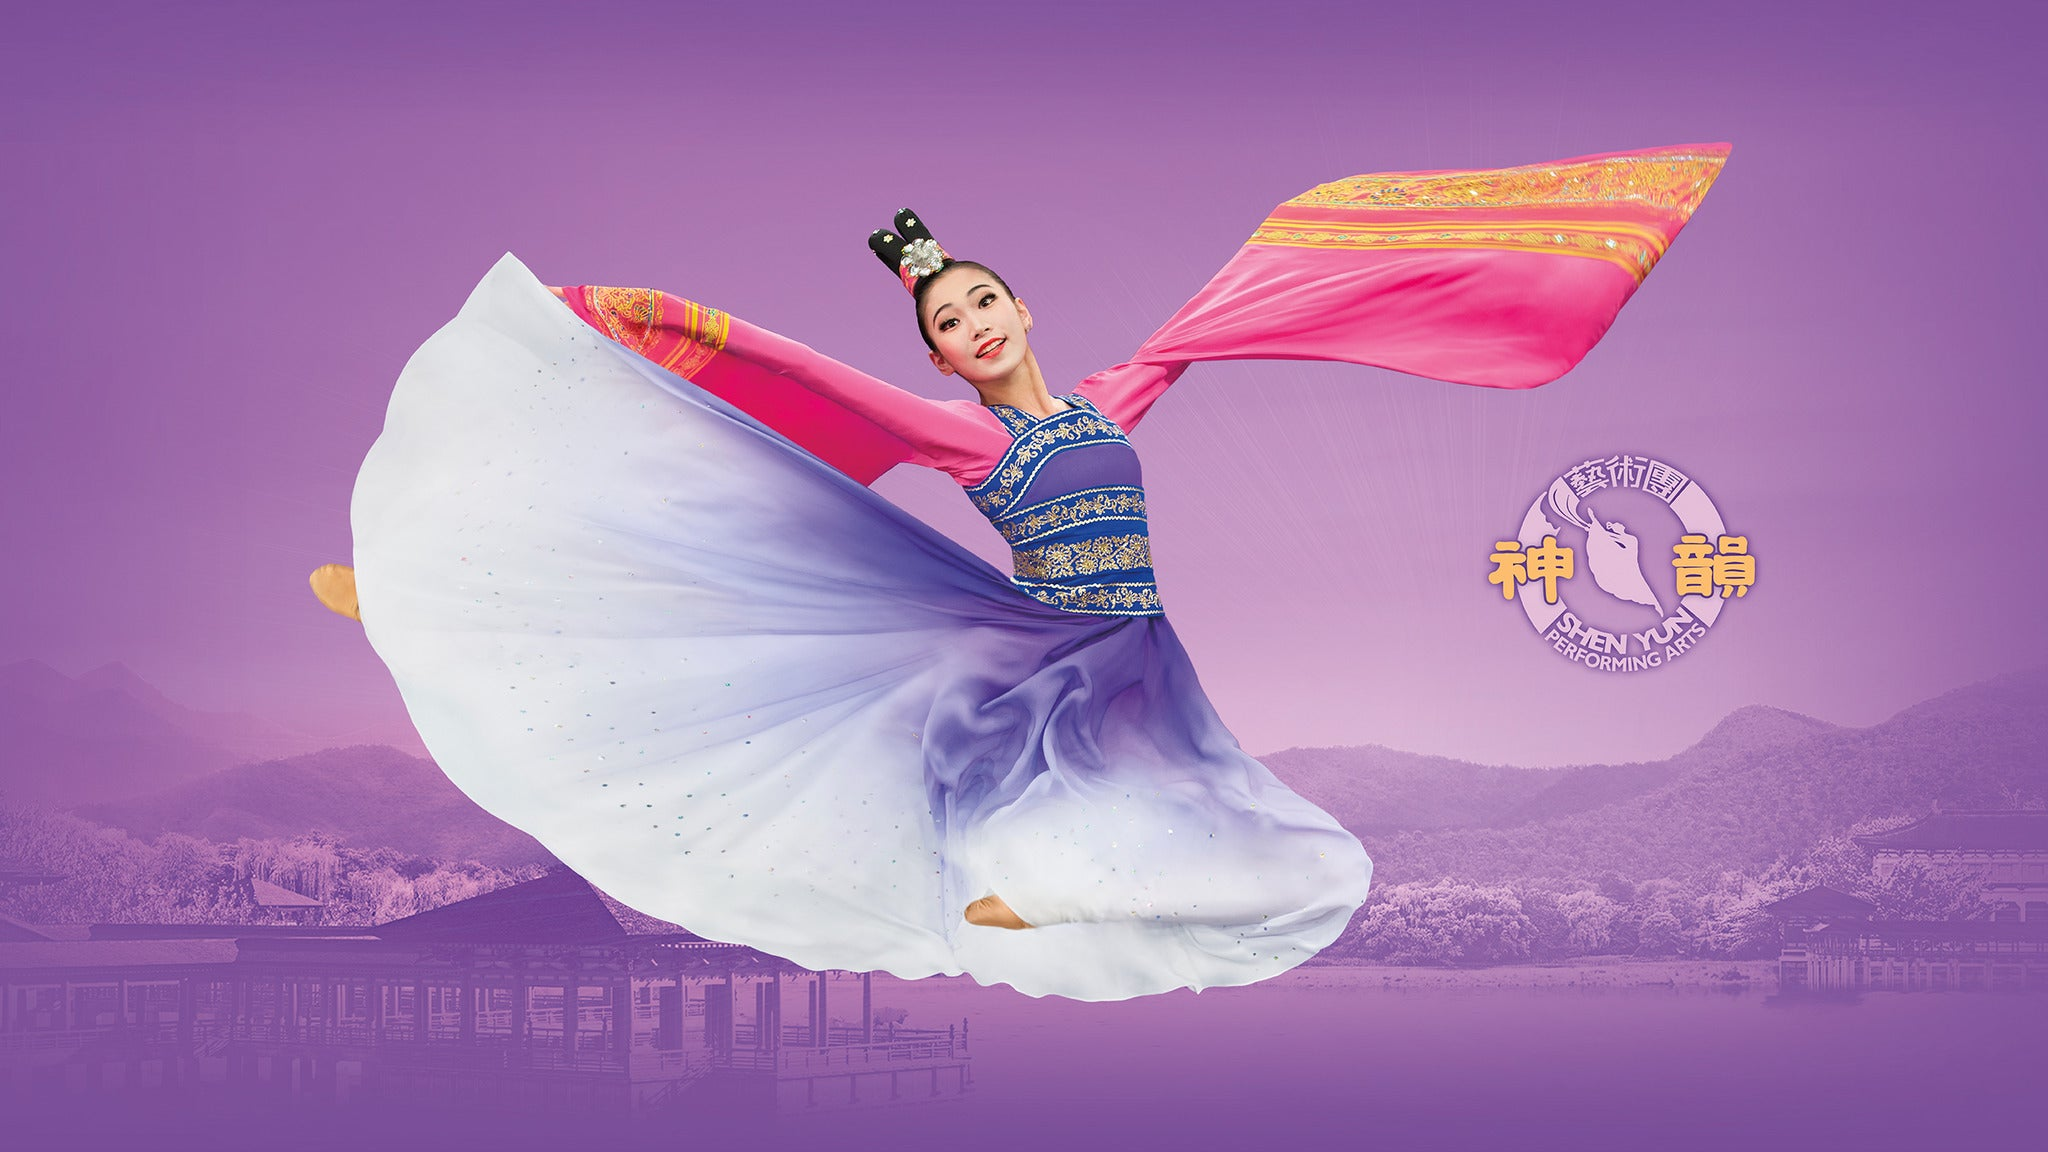 Shen Yun Performing Arts at California Center for the Arts